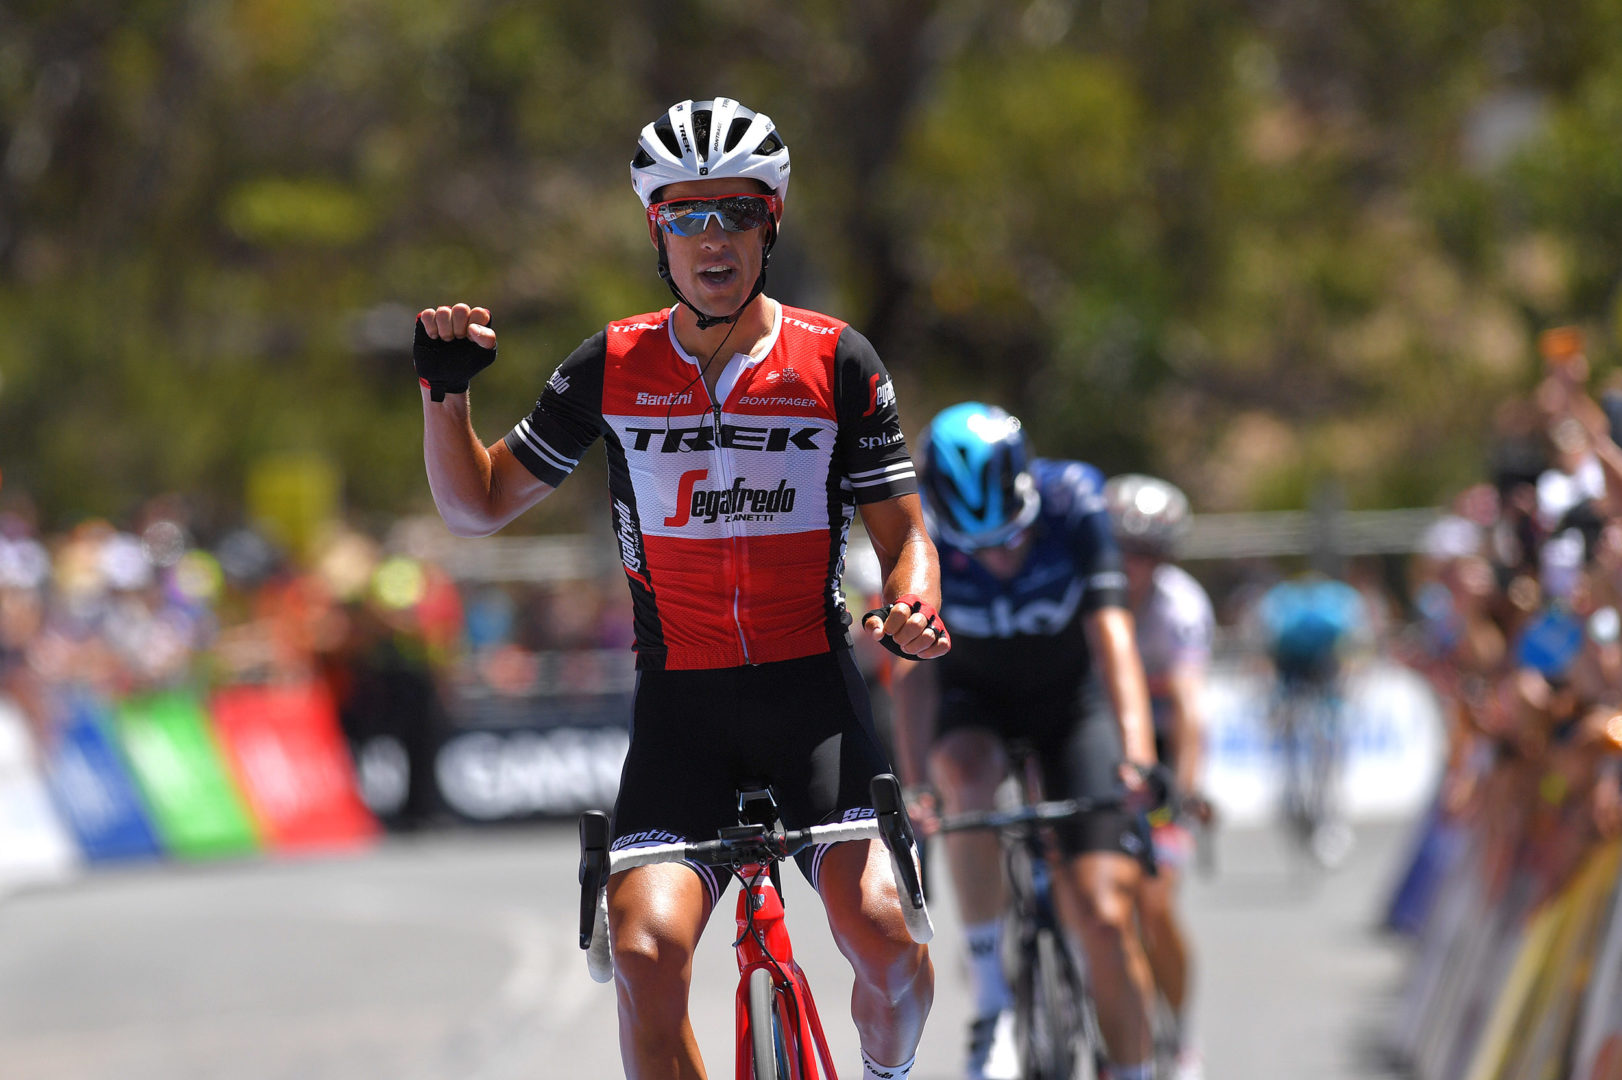 WILLUNGA HILL, AUSTRALIA - JANUARY 20: Arrival / Richie Porte of Australia and Team Trek-Segafredo Celebration / Wout Poels of The Netherlands and Team Sky / Daryl Impey of South Africa and Team Mitchelton-Scott / during the 21st Santos Tour Down Under 2019, Stage 6 a 151,5km stage from McLaren Vale to Willunga Hill 374m / TDU / on January 20, 2019 in Willunga Hill, Australia. (Photo by Tim de Waele/Getty Images)